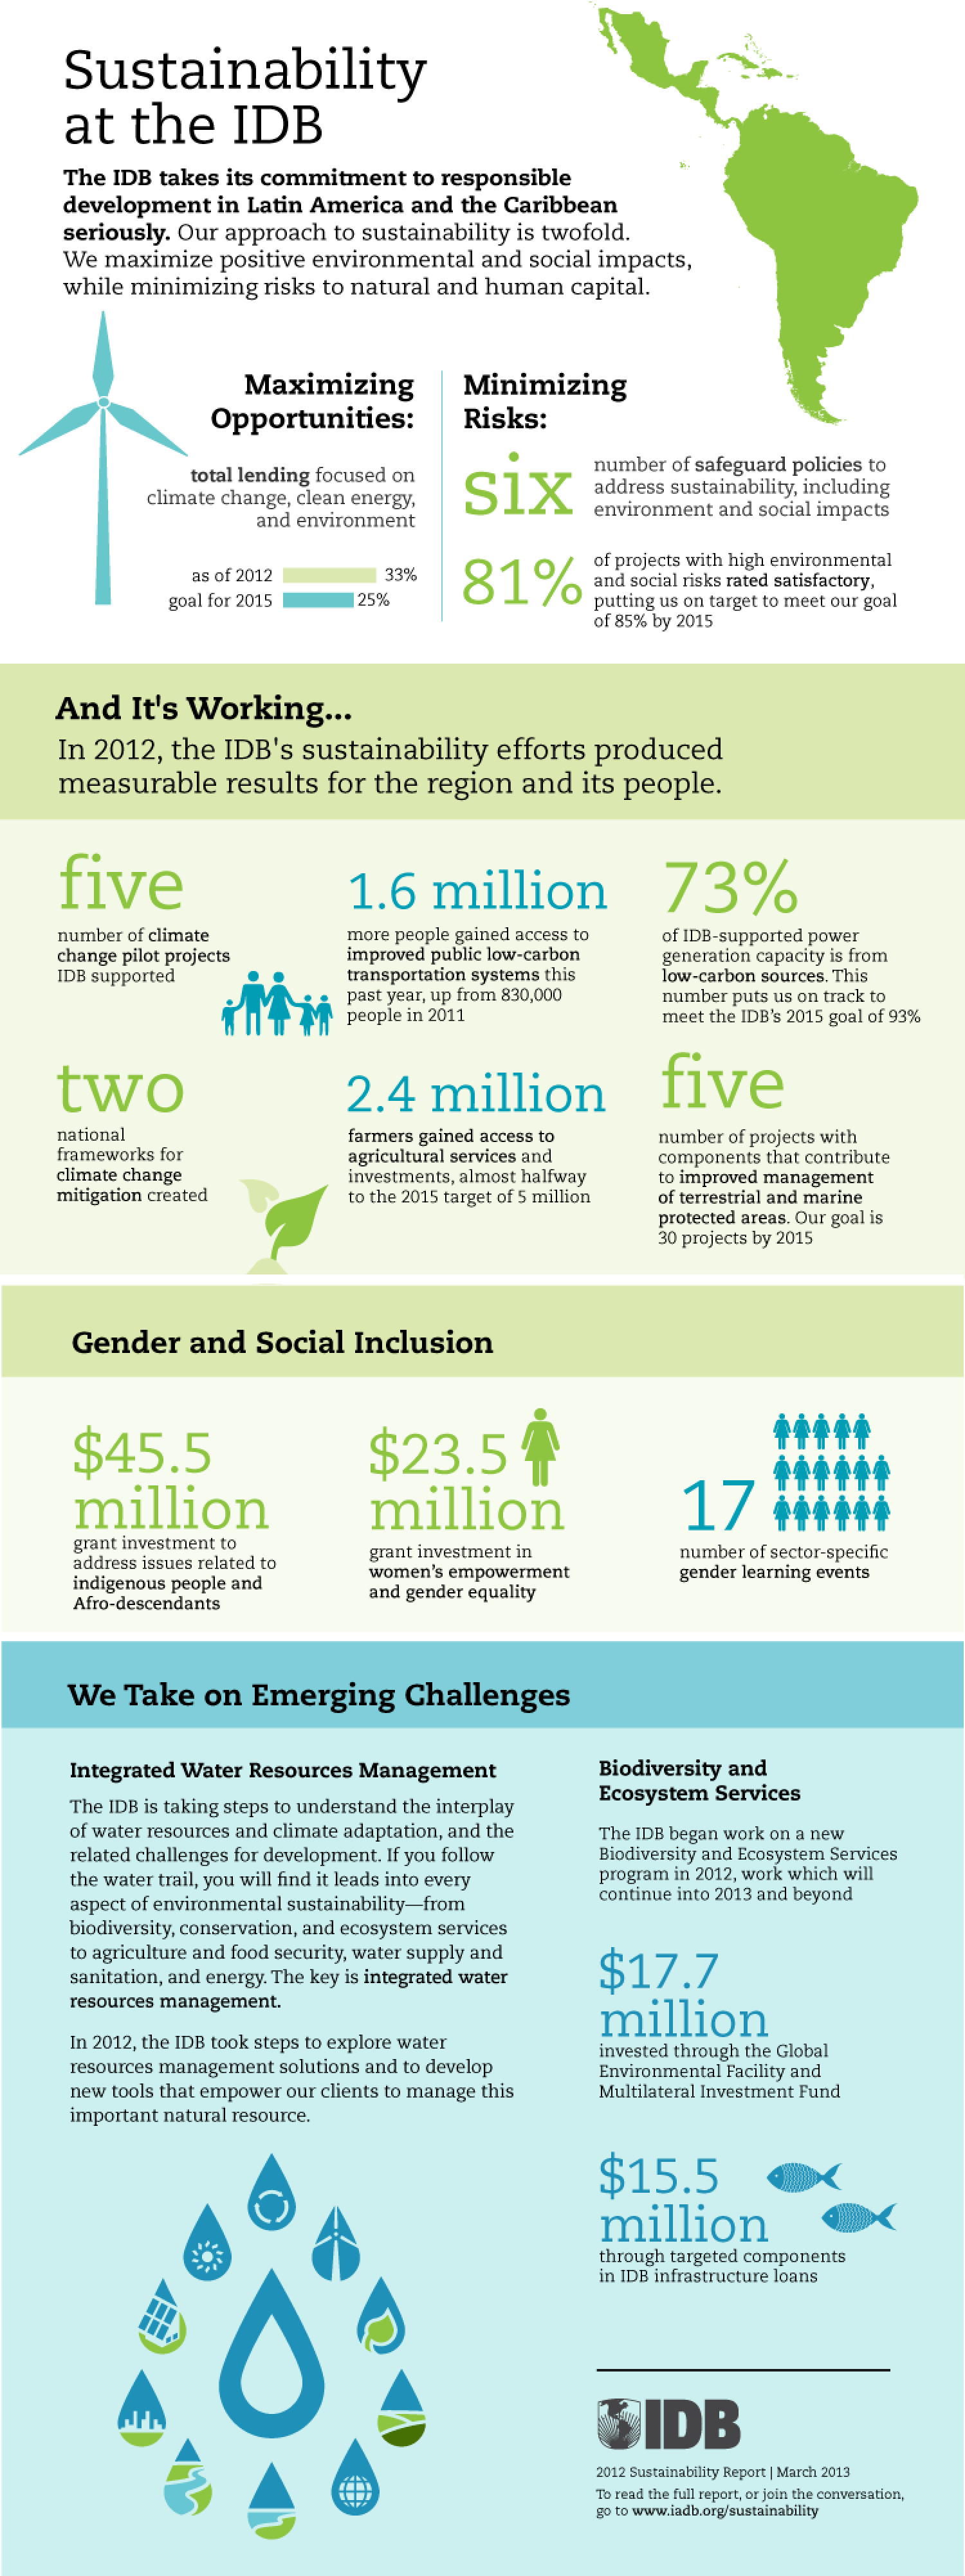 Sustainability at the IDB Infographic